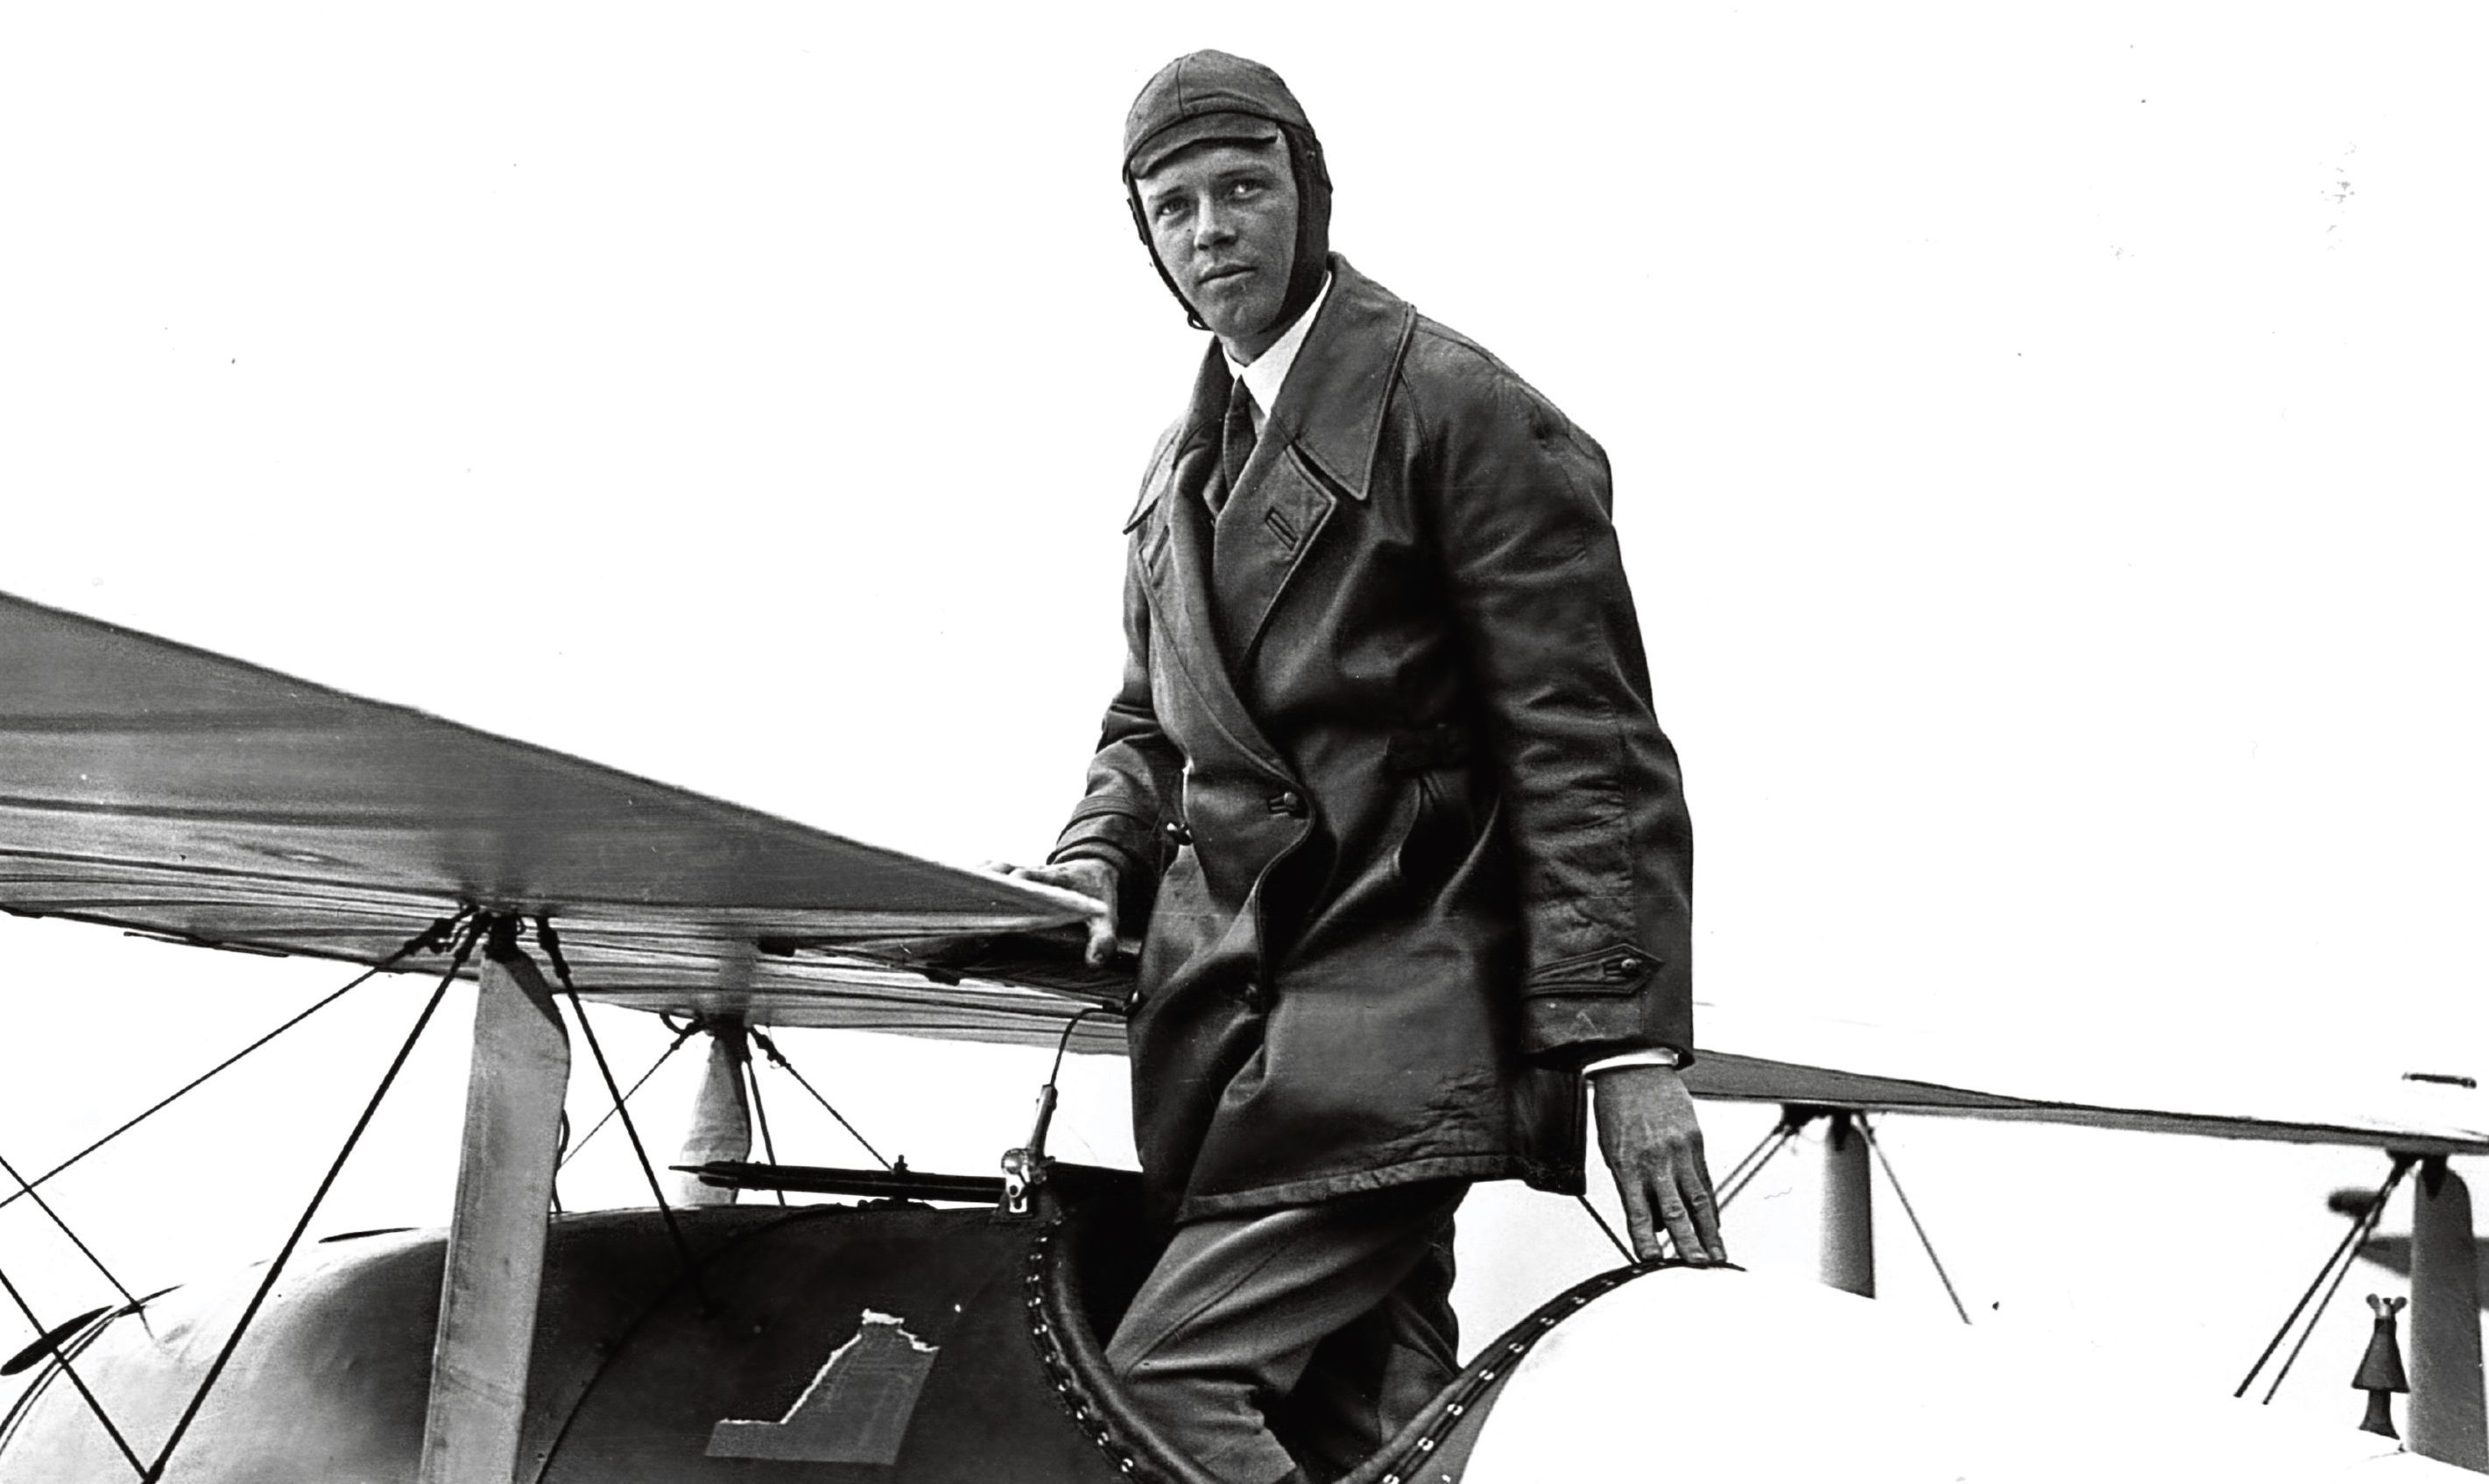 American aviator Colonel Charles Augustus Lindbergh (Central Press/Getty Images)